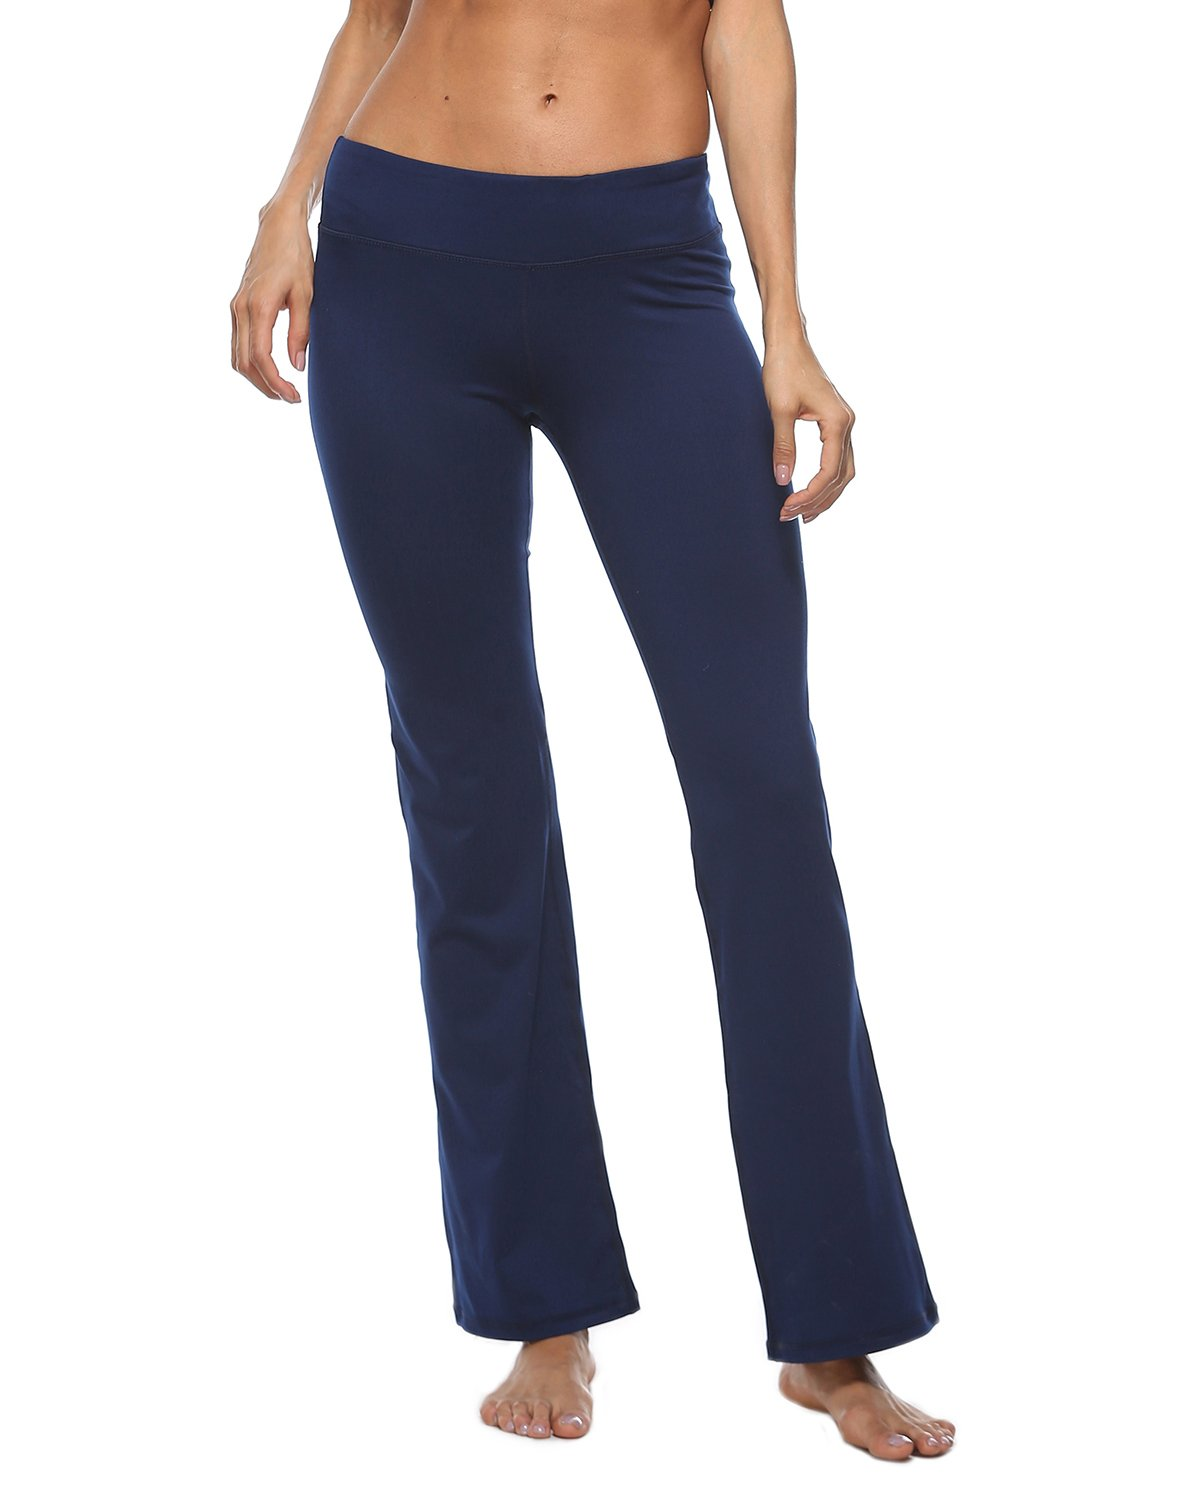 iYoga Women's High Waisted Yoga Pants Stretchy Wide Leg Pants with Pocket(Gyb034_Dblue,Small)